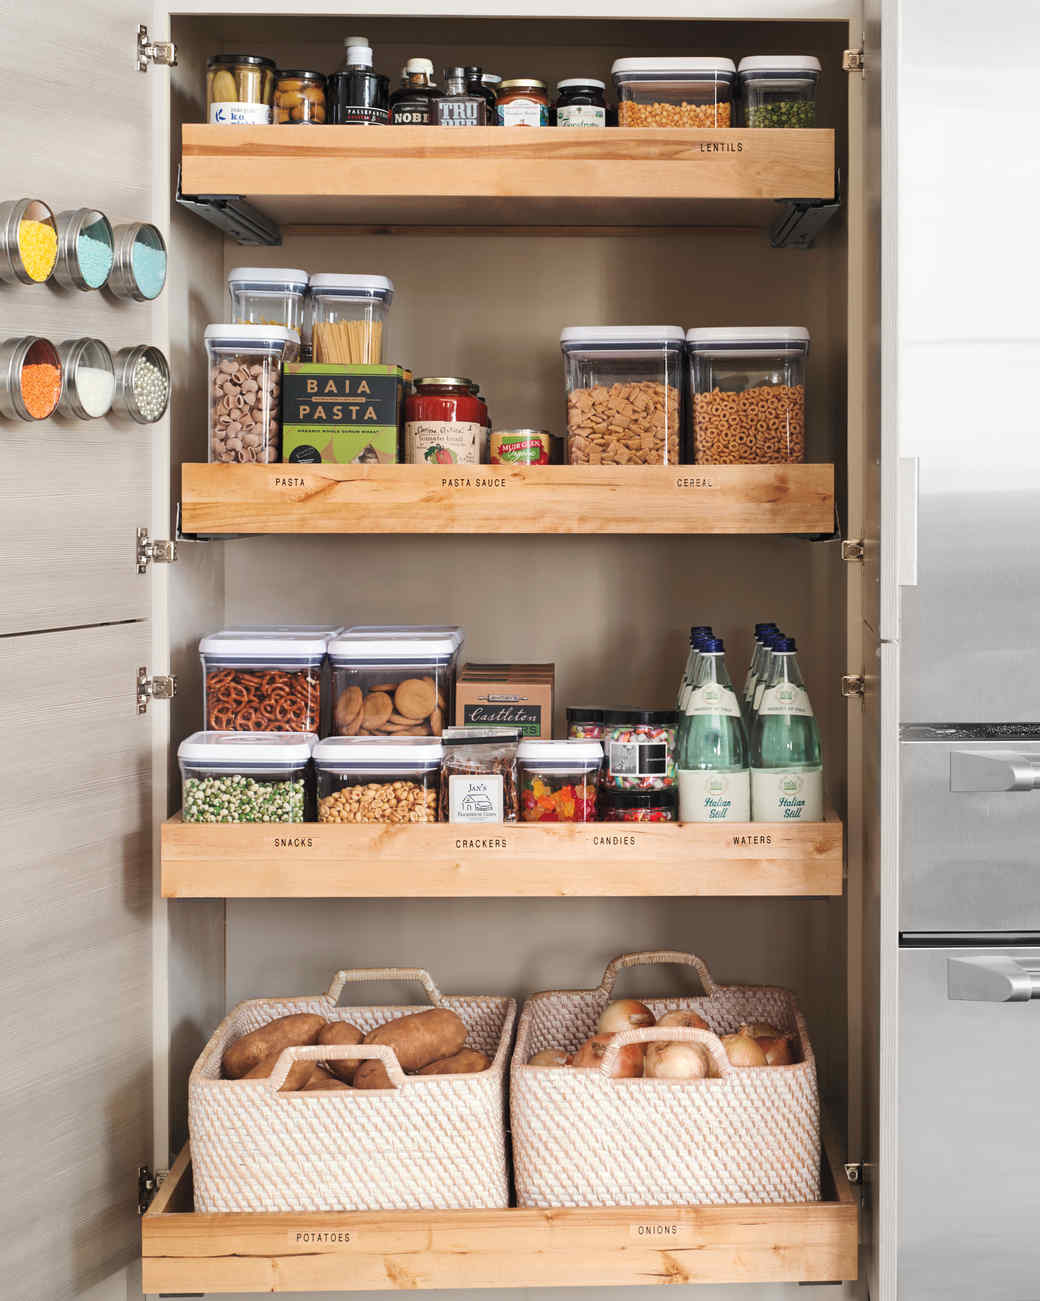 Best ideas about Pantry Closet Ideas . Save or Pin 10 Best Pantry Storage Ideas Now.